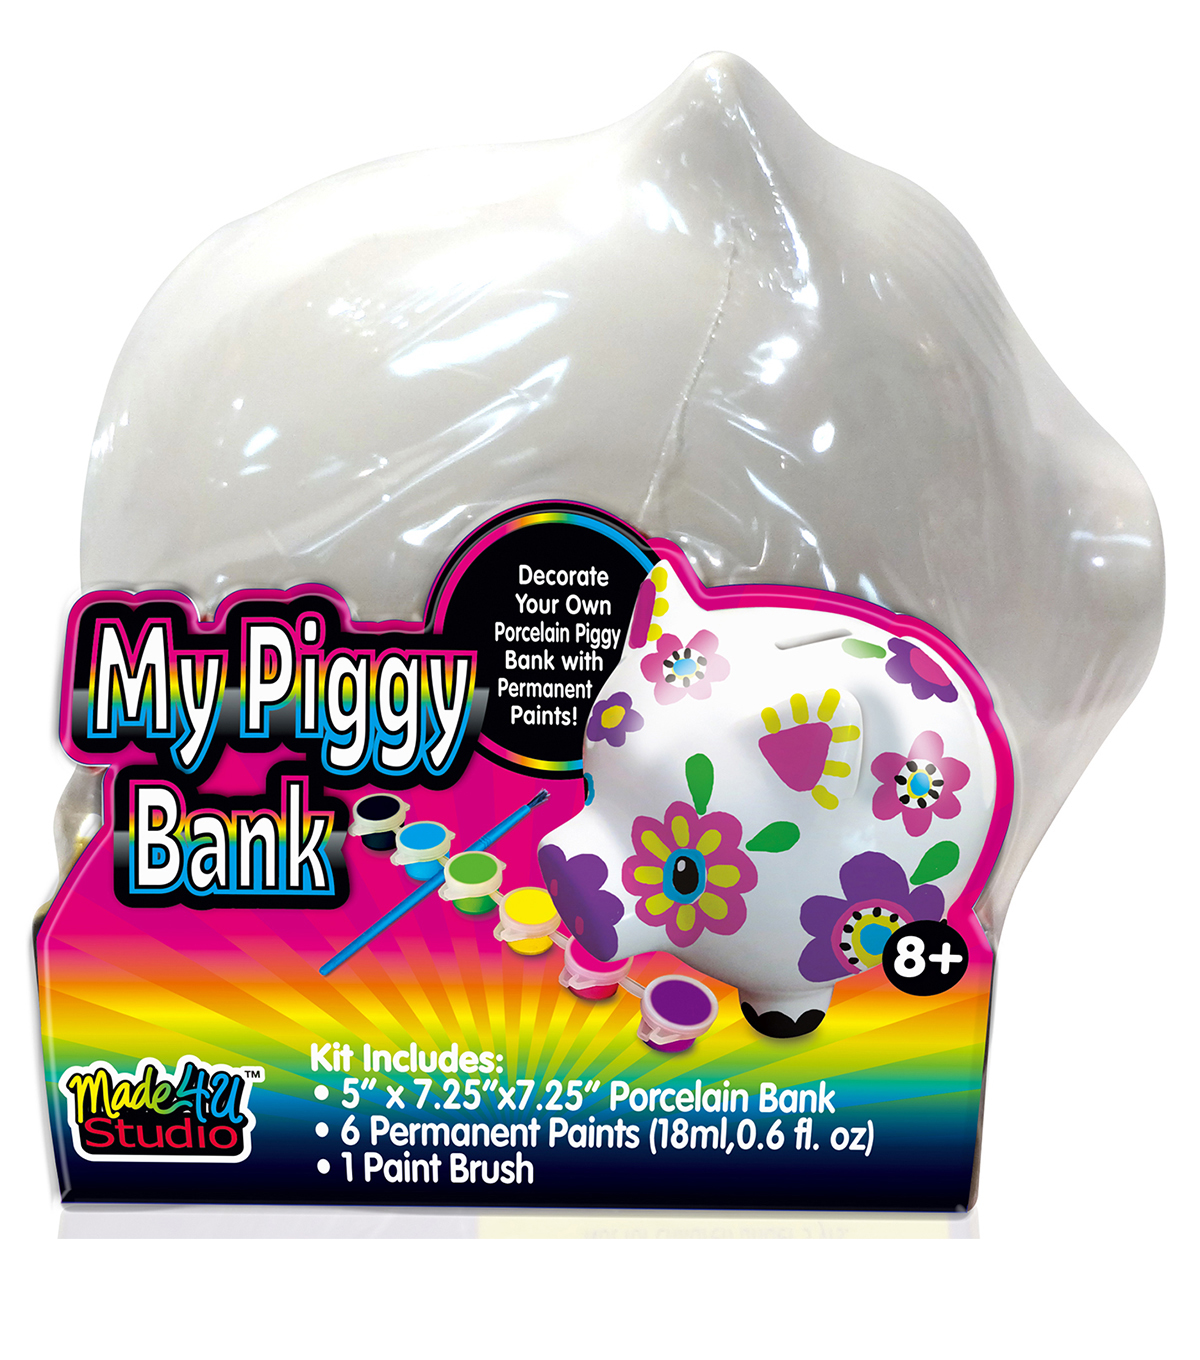 Made 4 U Studio-My Piggy Bank